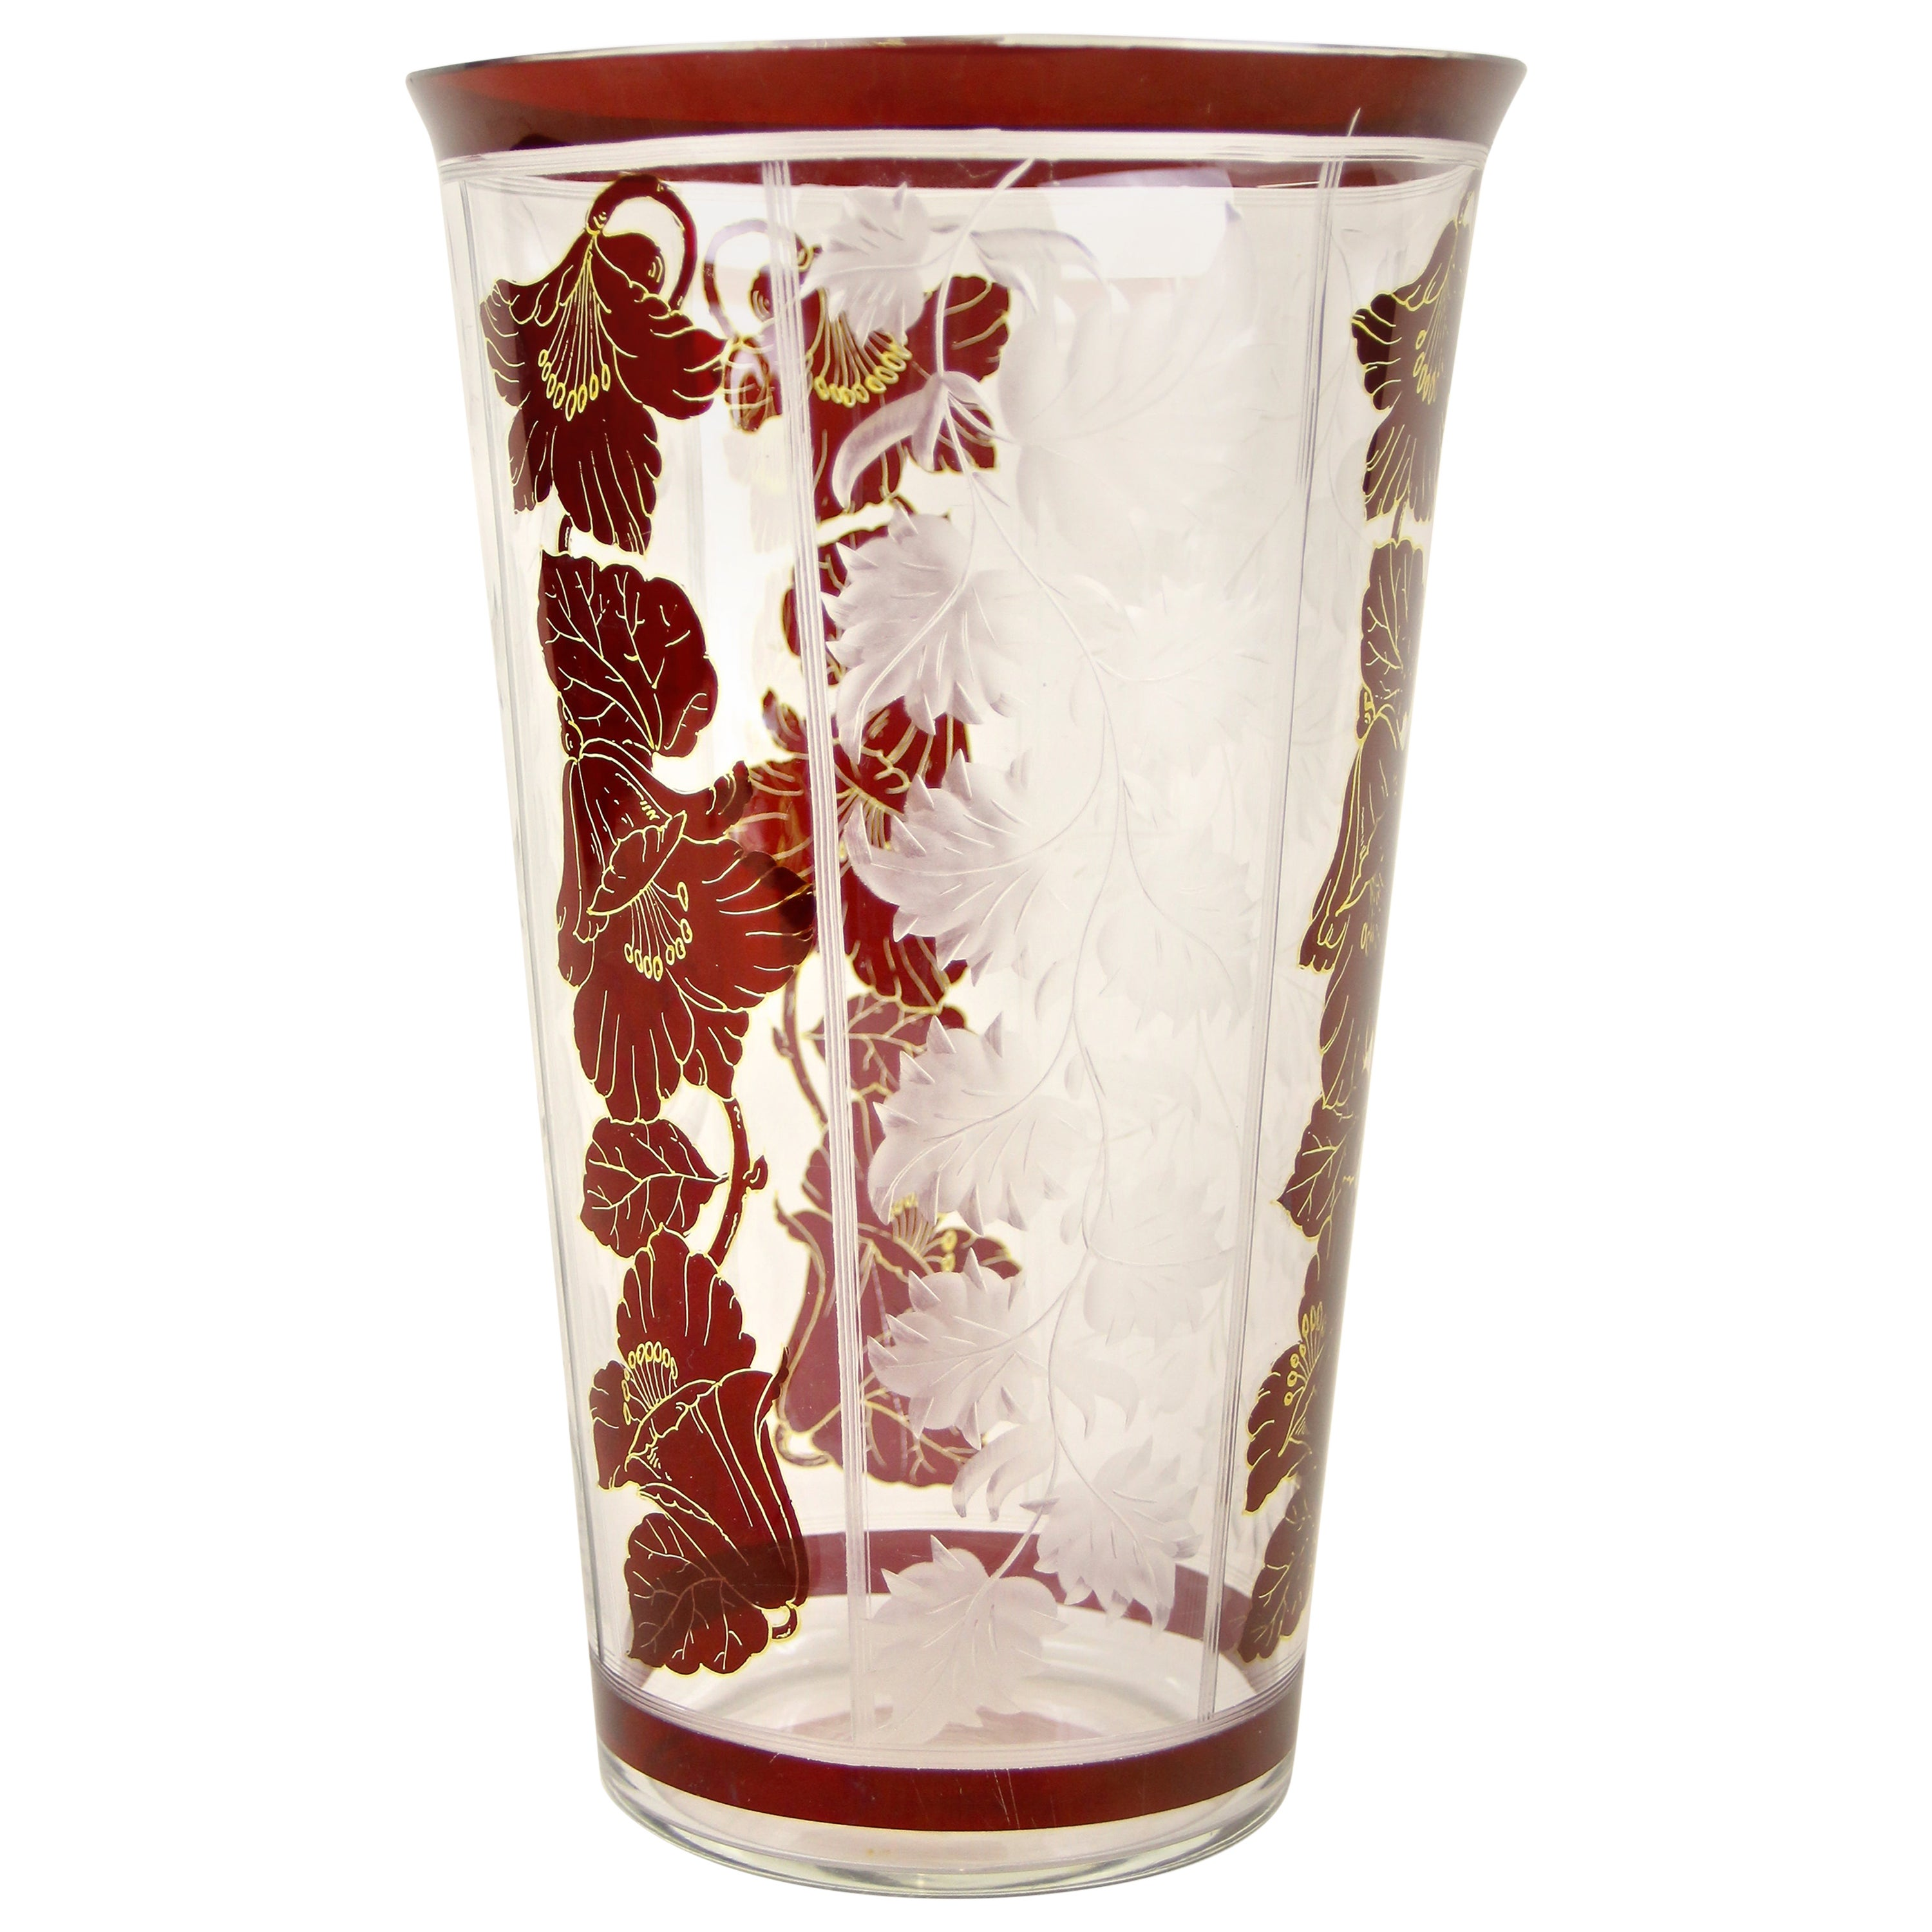 Art Nouveau Glass Vase with Flowers and Engraved Leaves, Austria, circa 1900